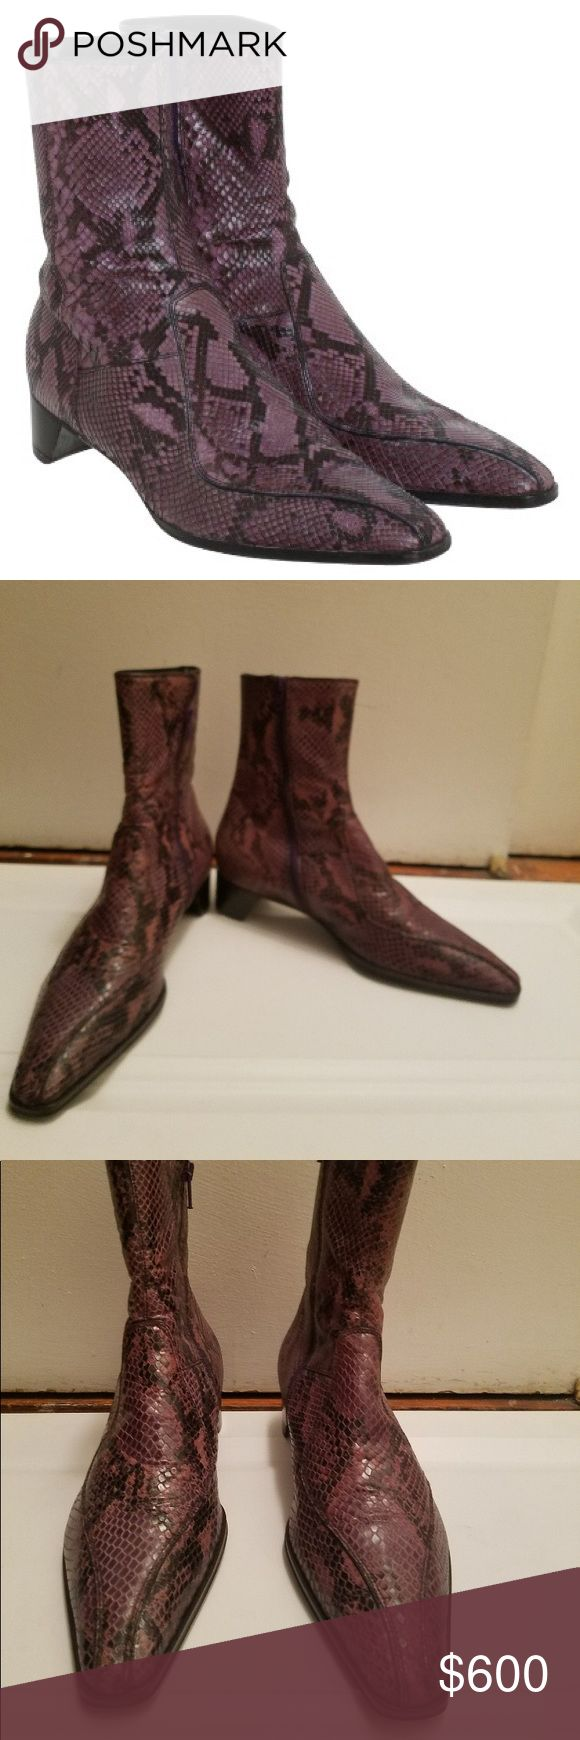 FRIDAY POST Python snake skin prada boots 39 Very good used condition Python snake skin in  violet /purple color  zipper  in inseam very comfortable size 39 euro fits 8 1/2 or 9 Perfectly worn few times indoor mostly for couple hours each as can be seen by soles been sitting in my closet Prada Shoes